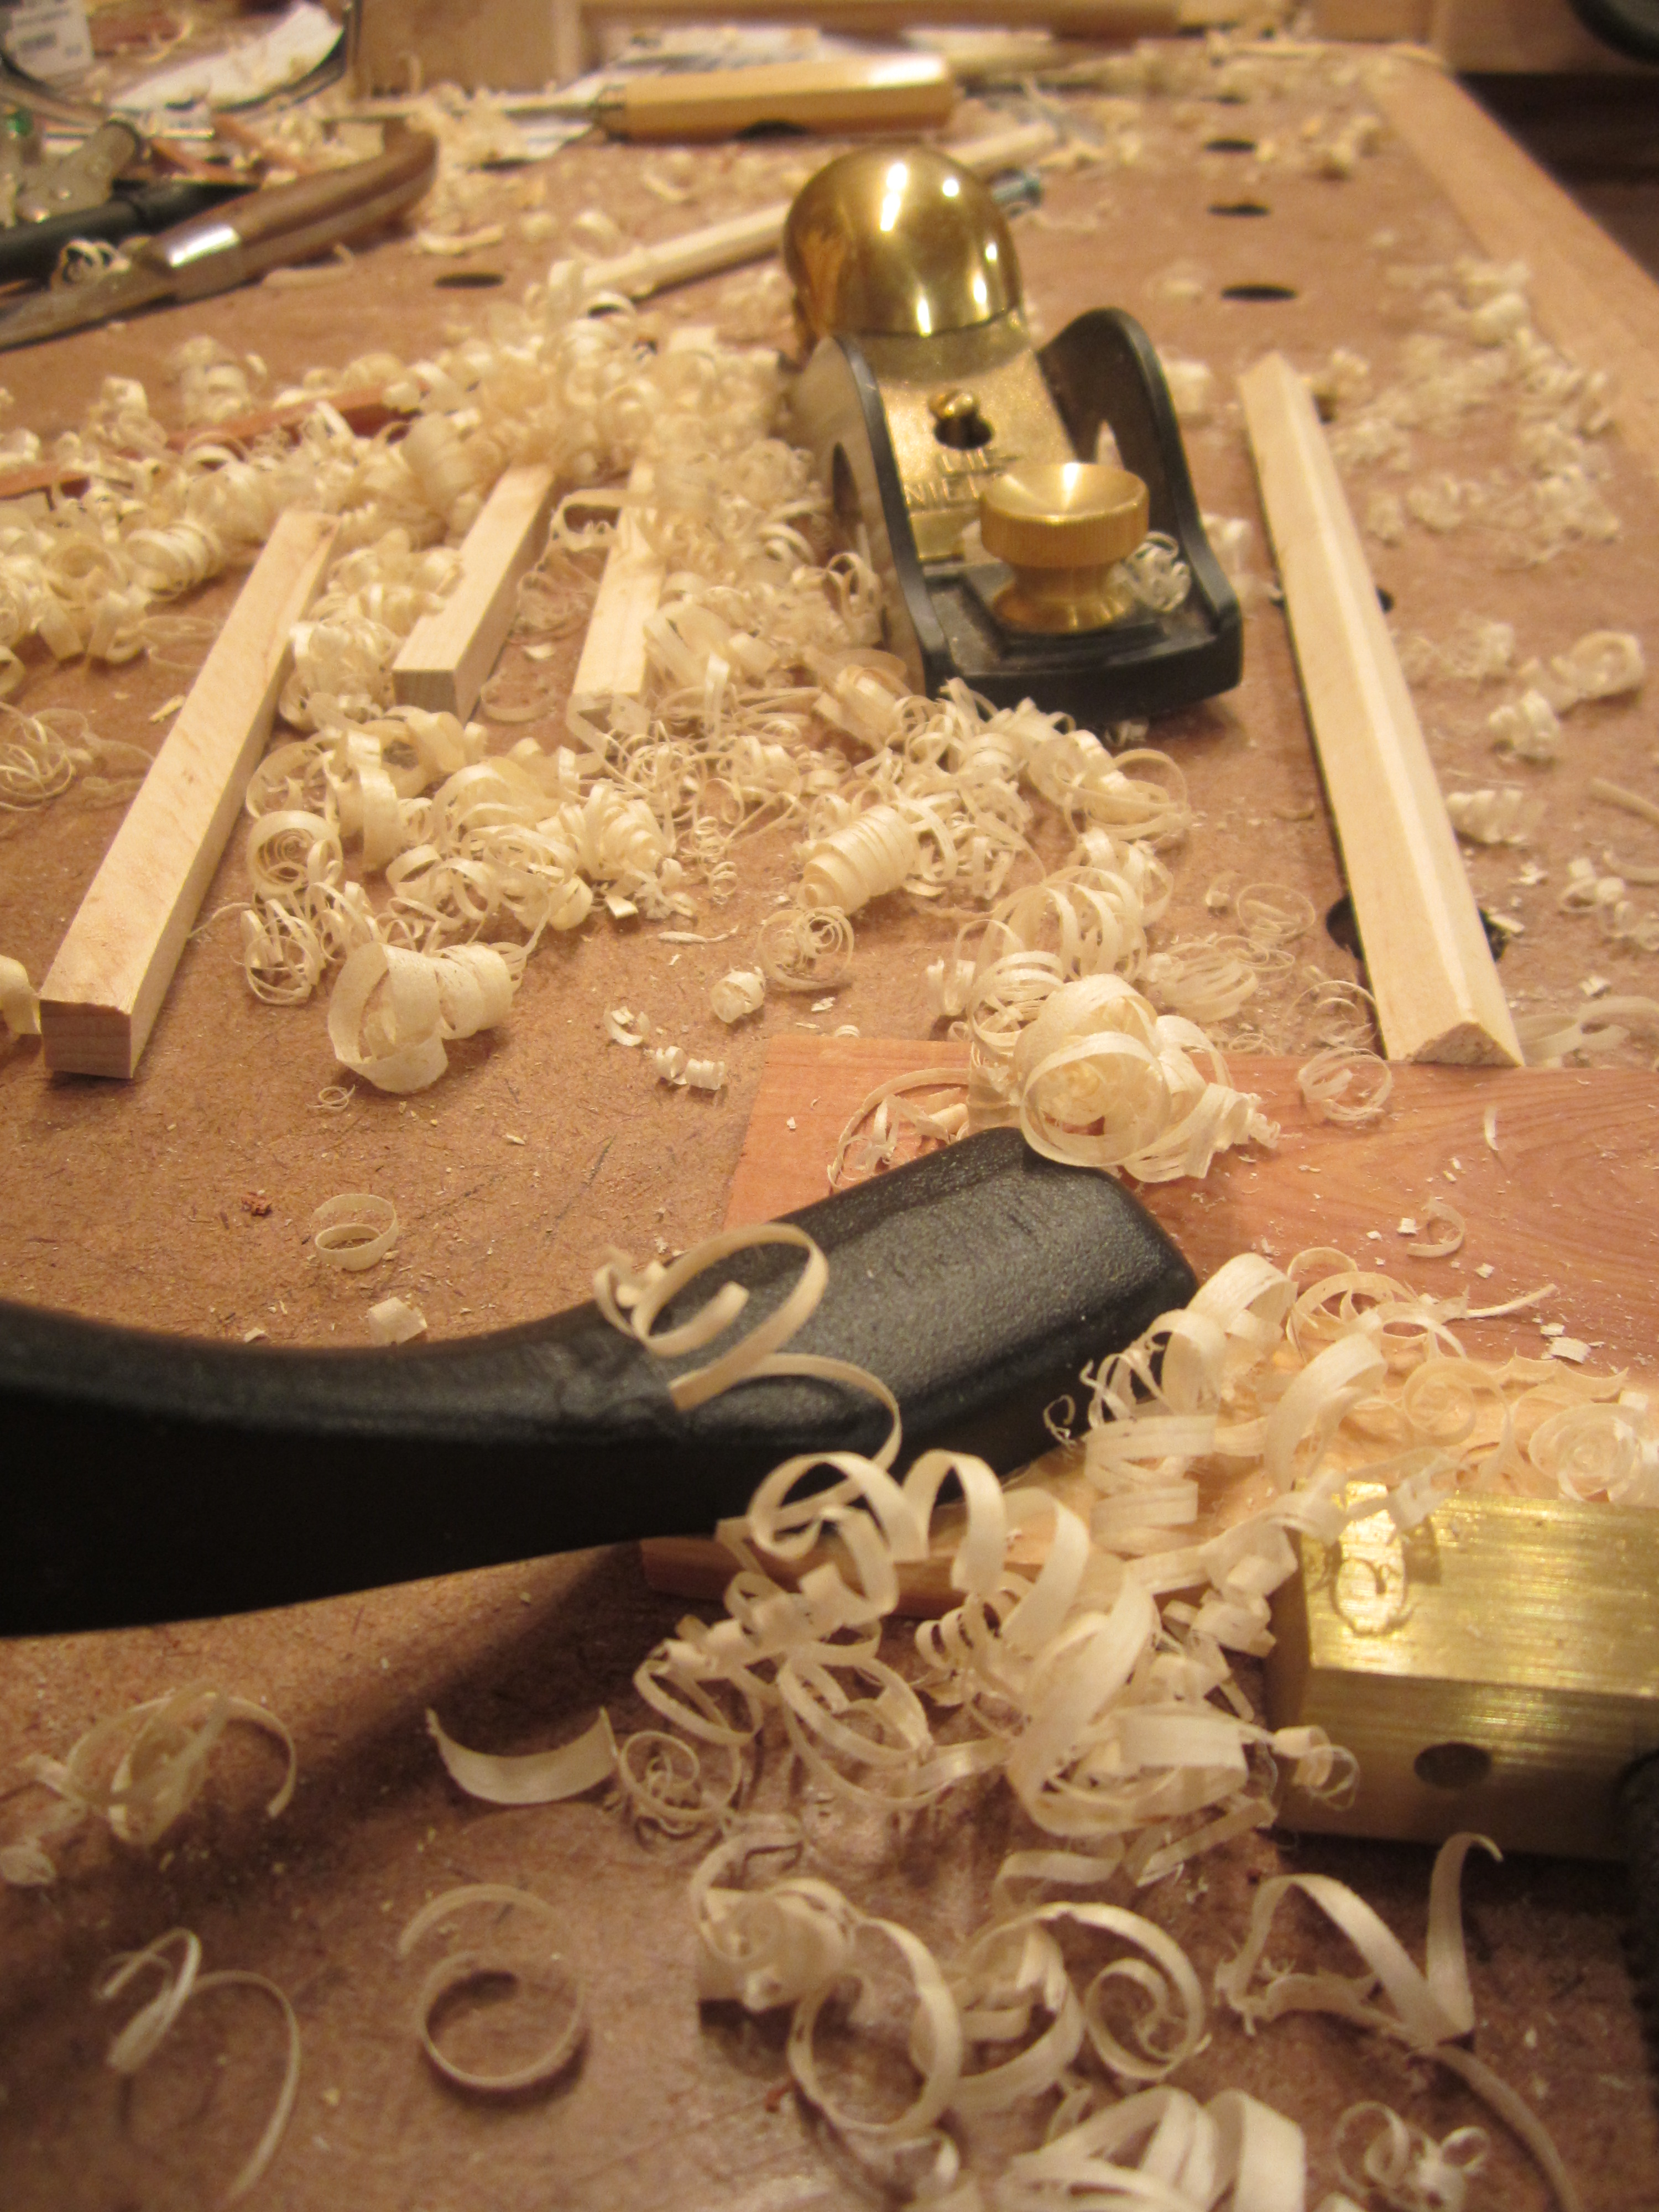 fine woodworking annual tool review | Easy Woodworking Solutions